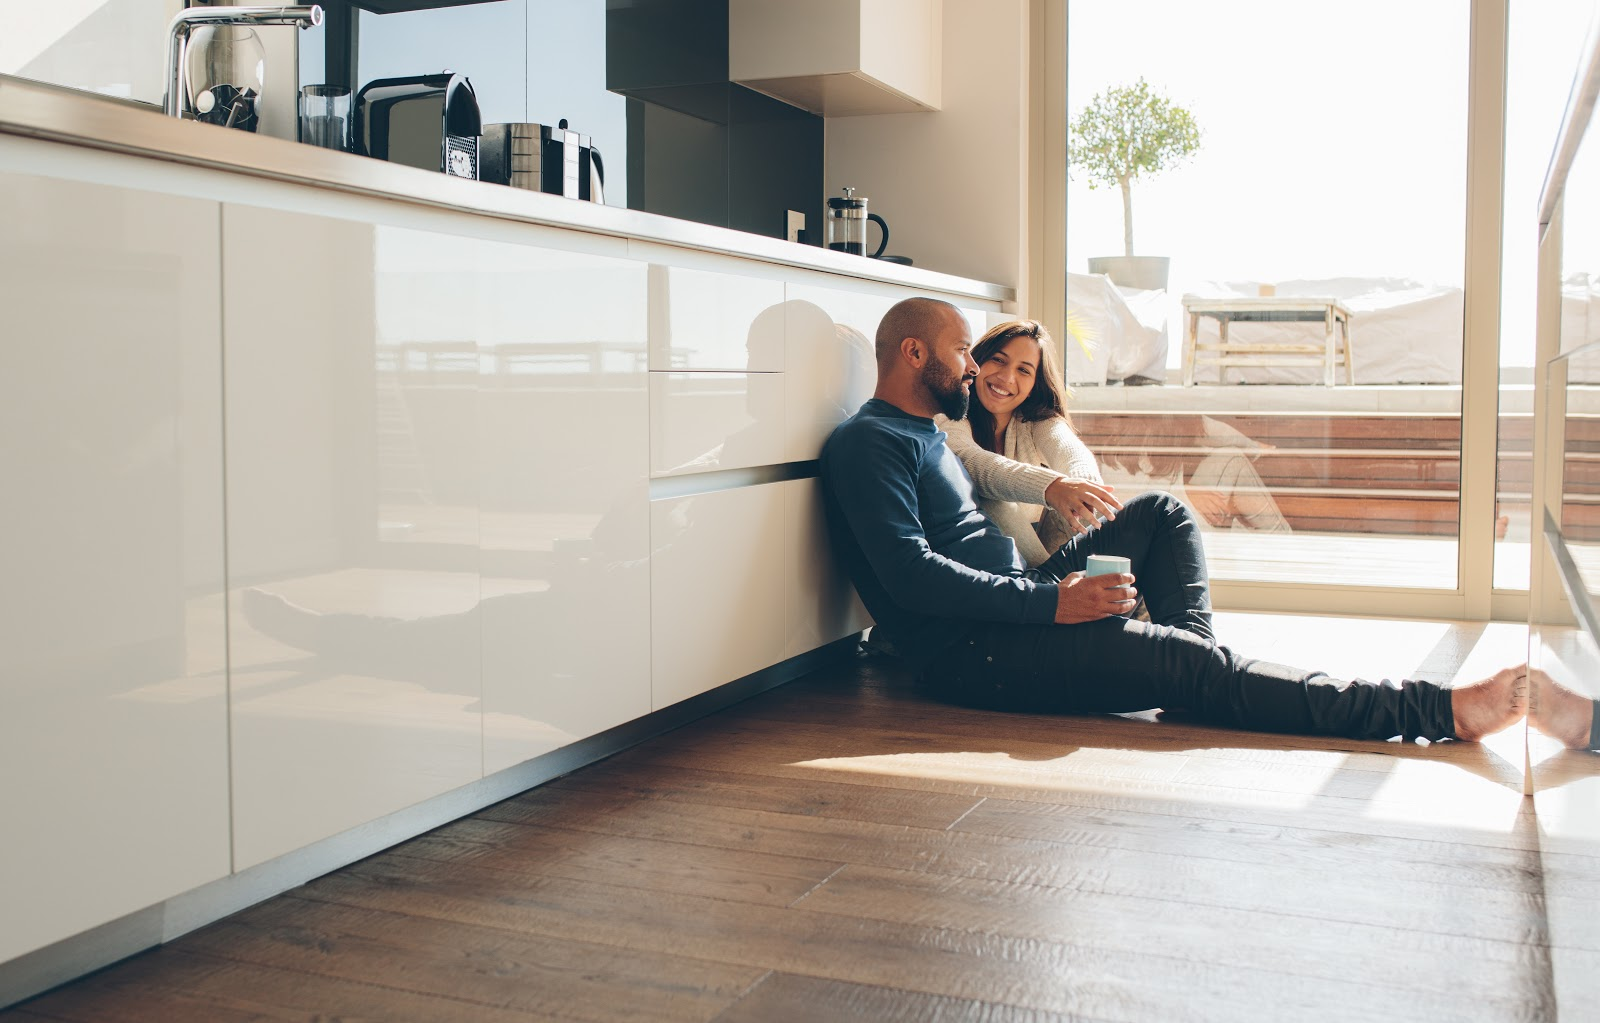 A couple sitting on the floor in their kitchen